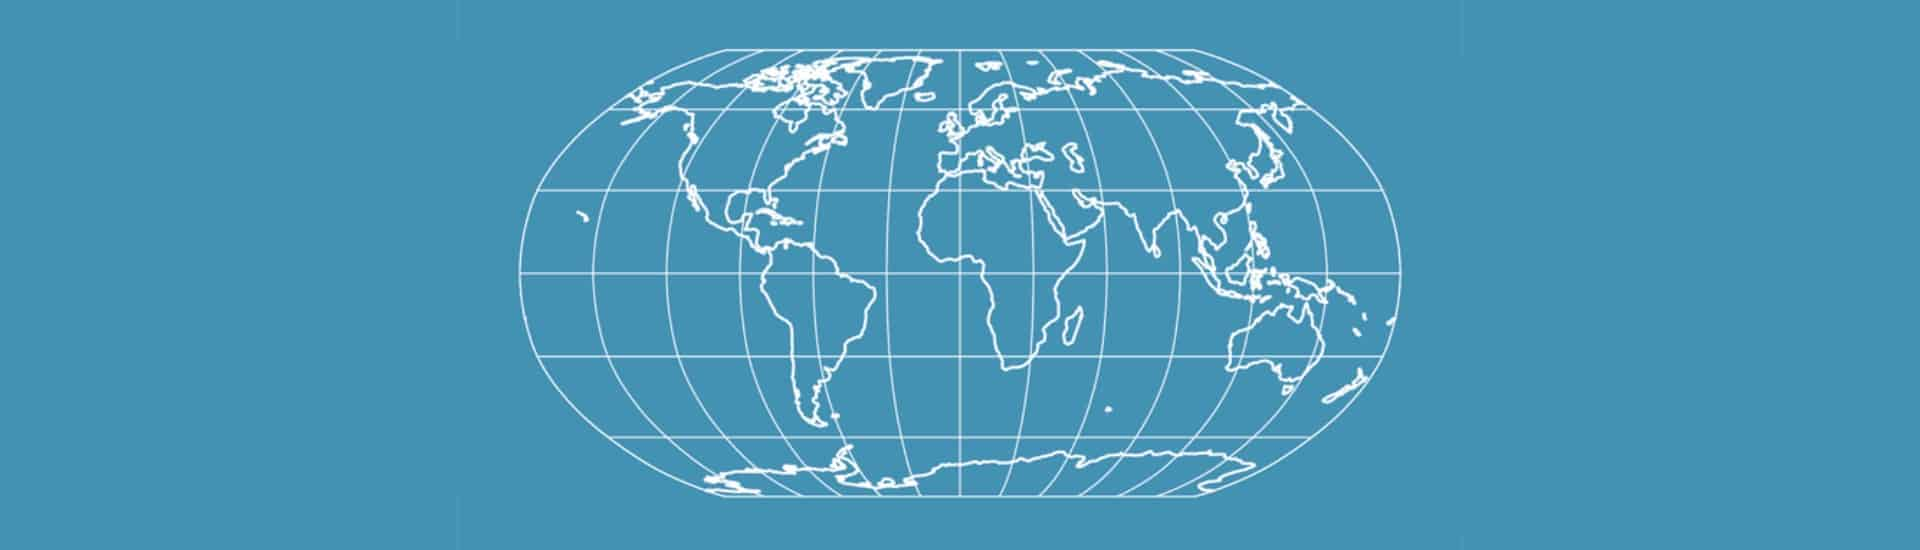 Map projections and why they matter